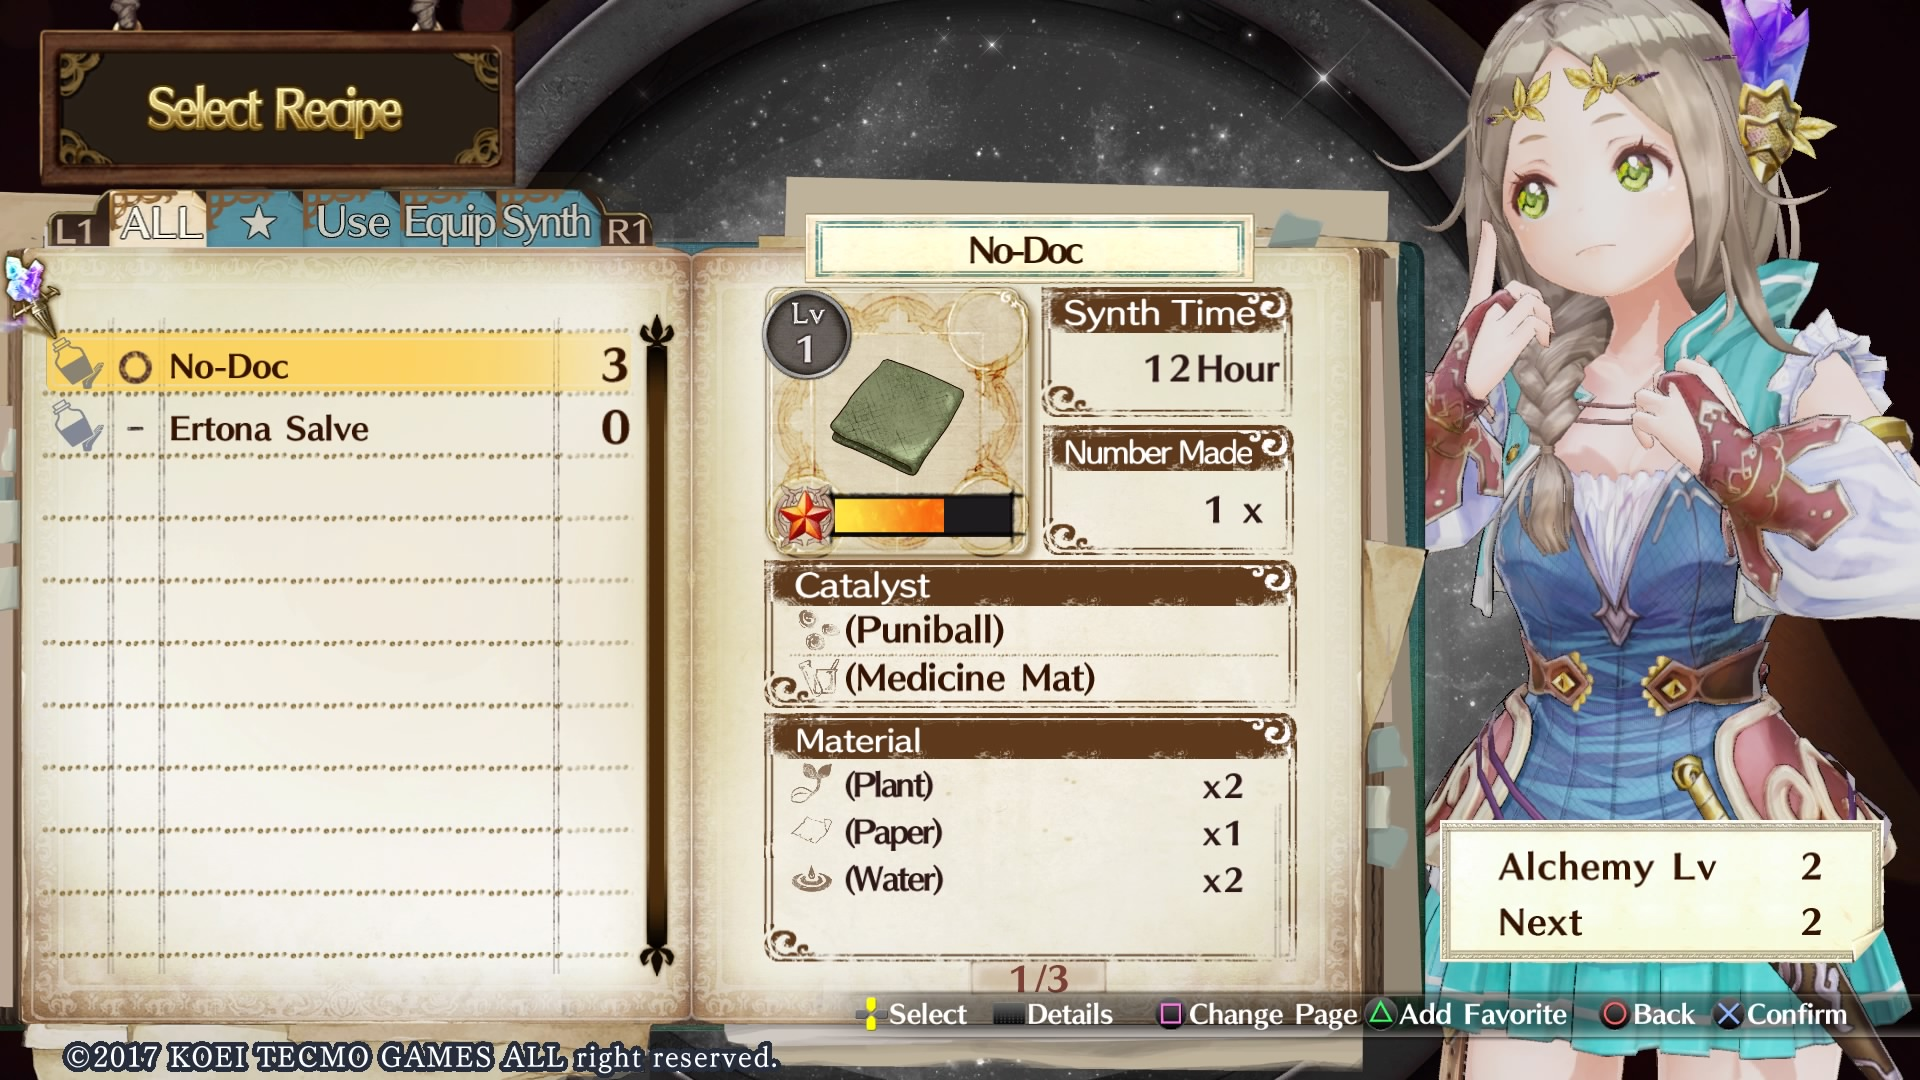 atelier firis alchemist of the mysterious journey what a fine atelier games often look lively and colorful and atelier firis alchemist of the mysterious journey is not all that different in this regard